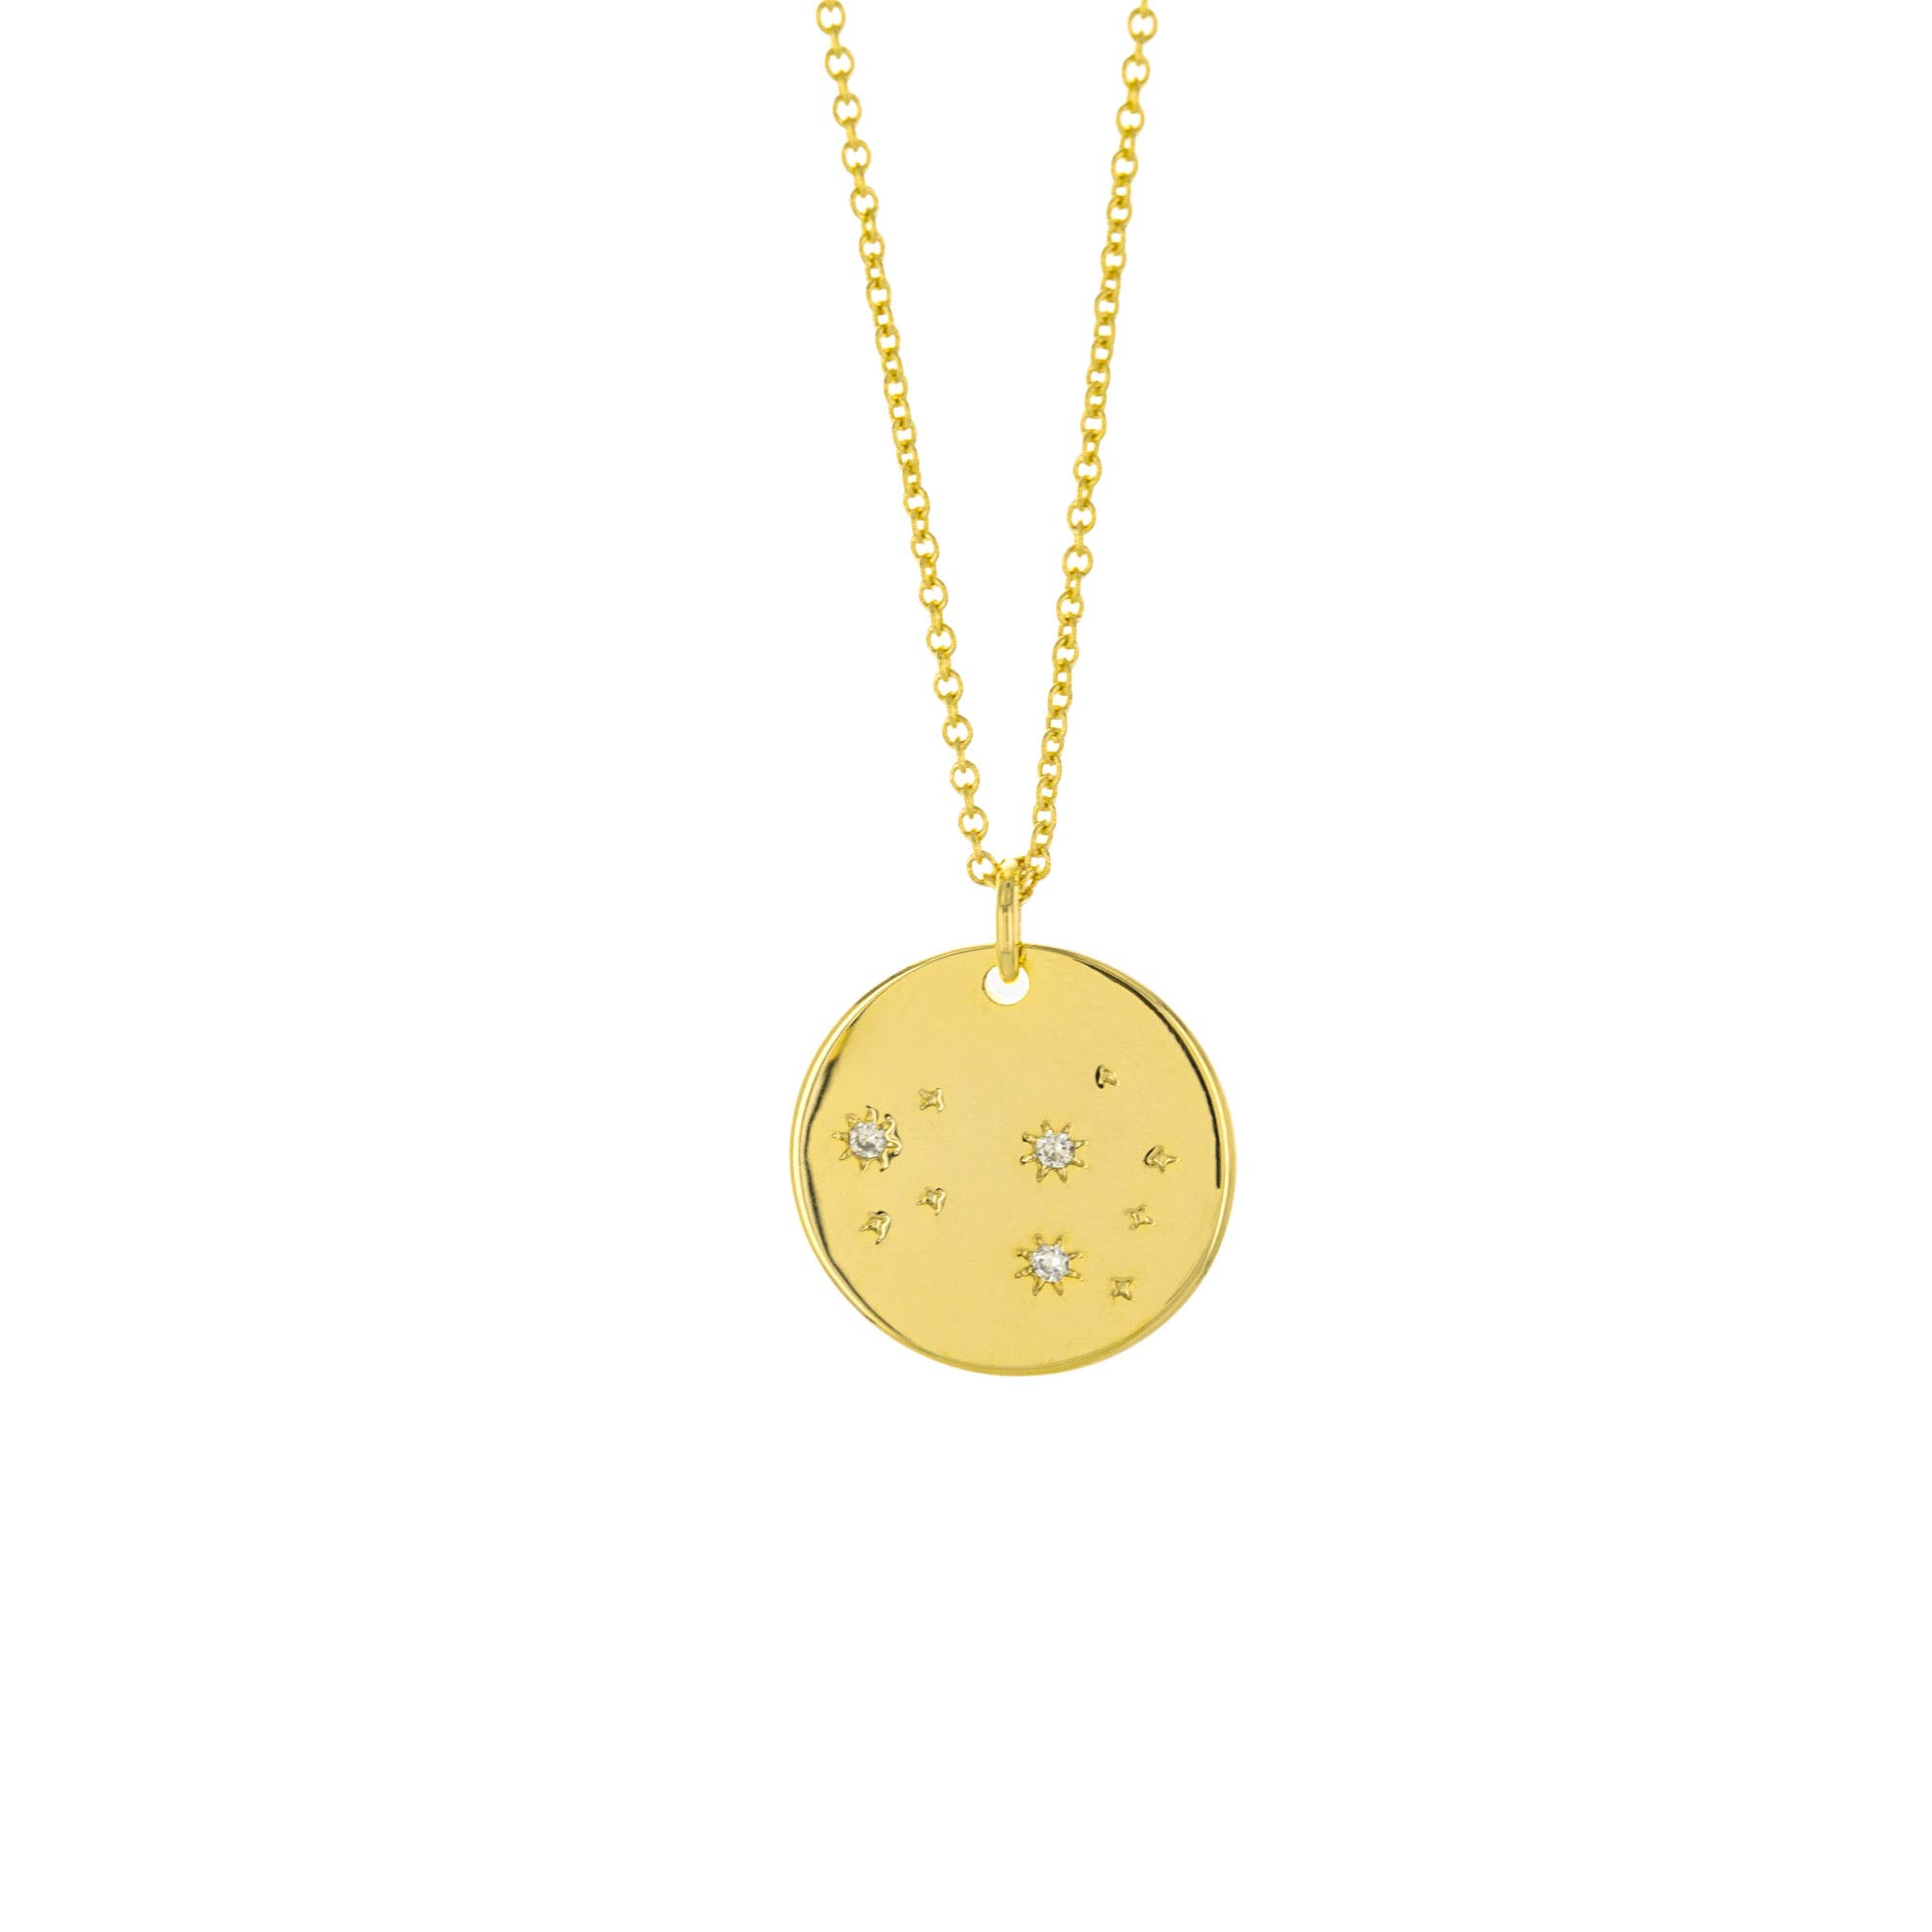 Columbus 14K Gold Plated Astrology Horoscope Constellation Zodiac Coin Necklace (Leo)